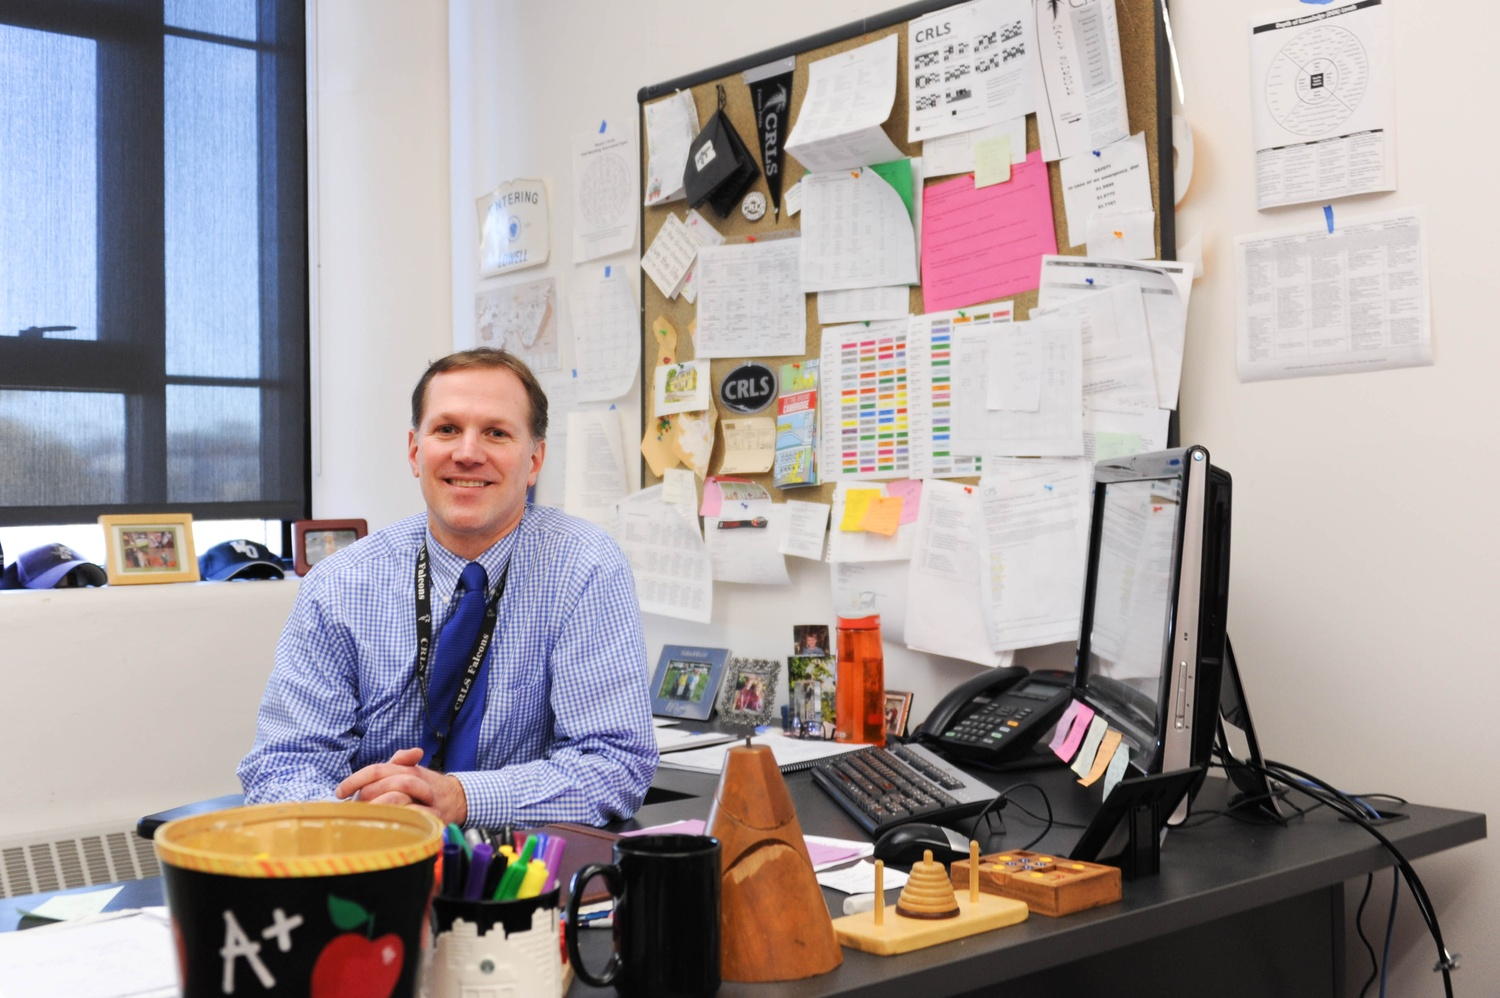 Jeff Gaglione, Dean of Mathematics at Cambridge Rindge and Latin School, poses for a photo at his desk Thursday afternoon.